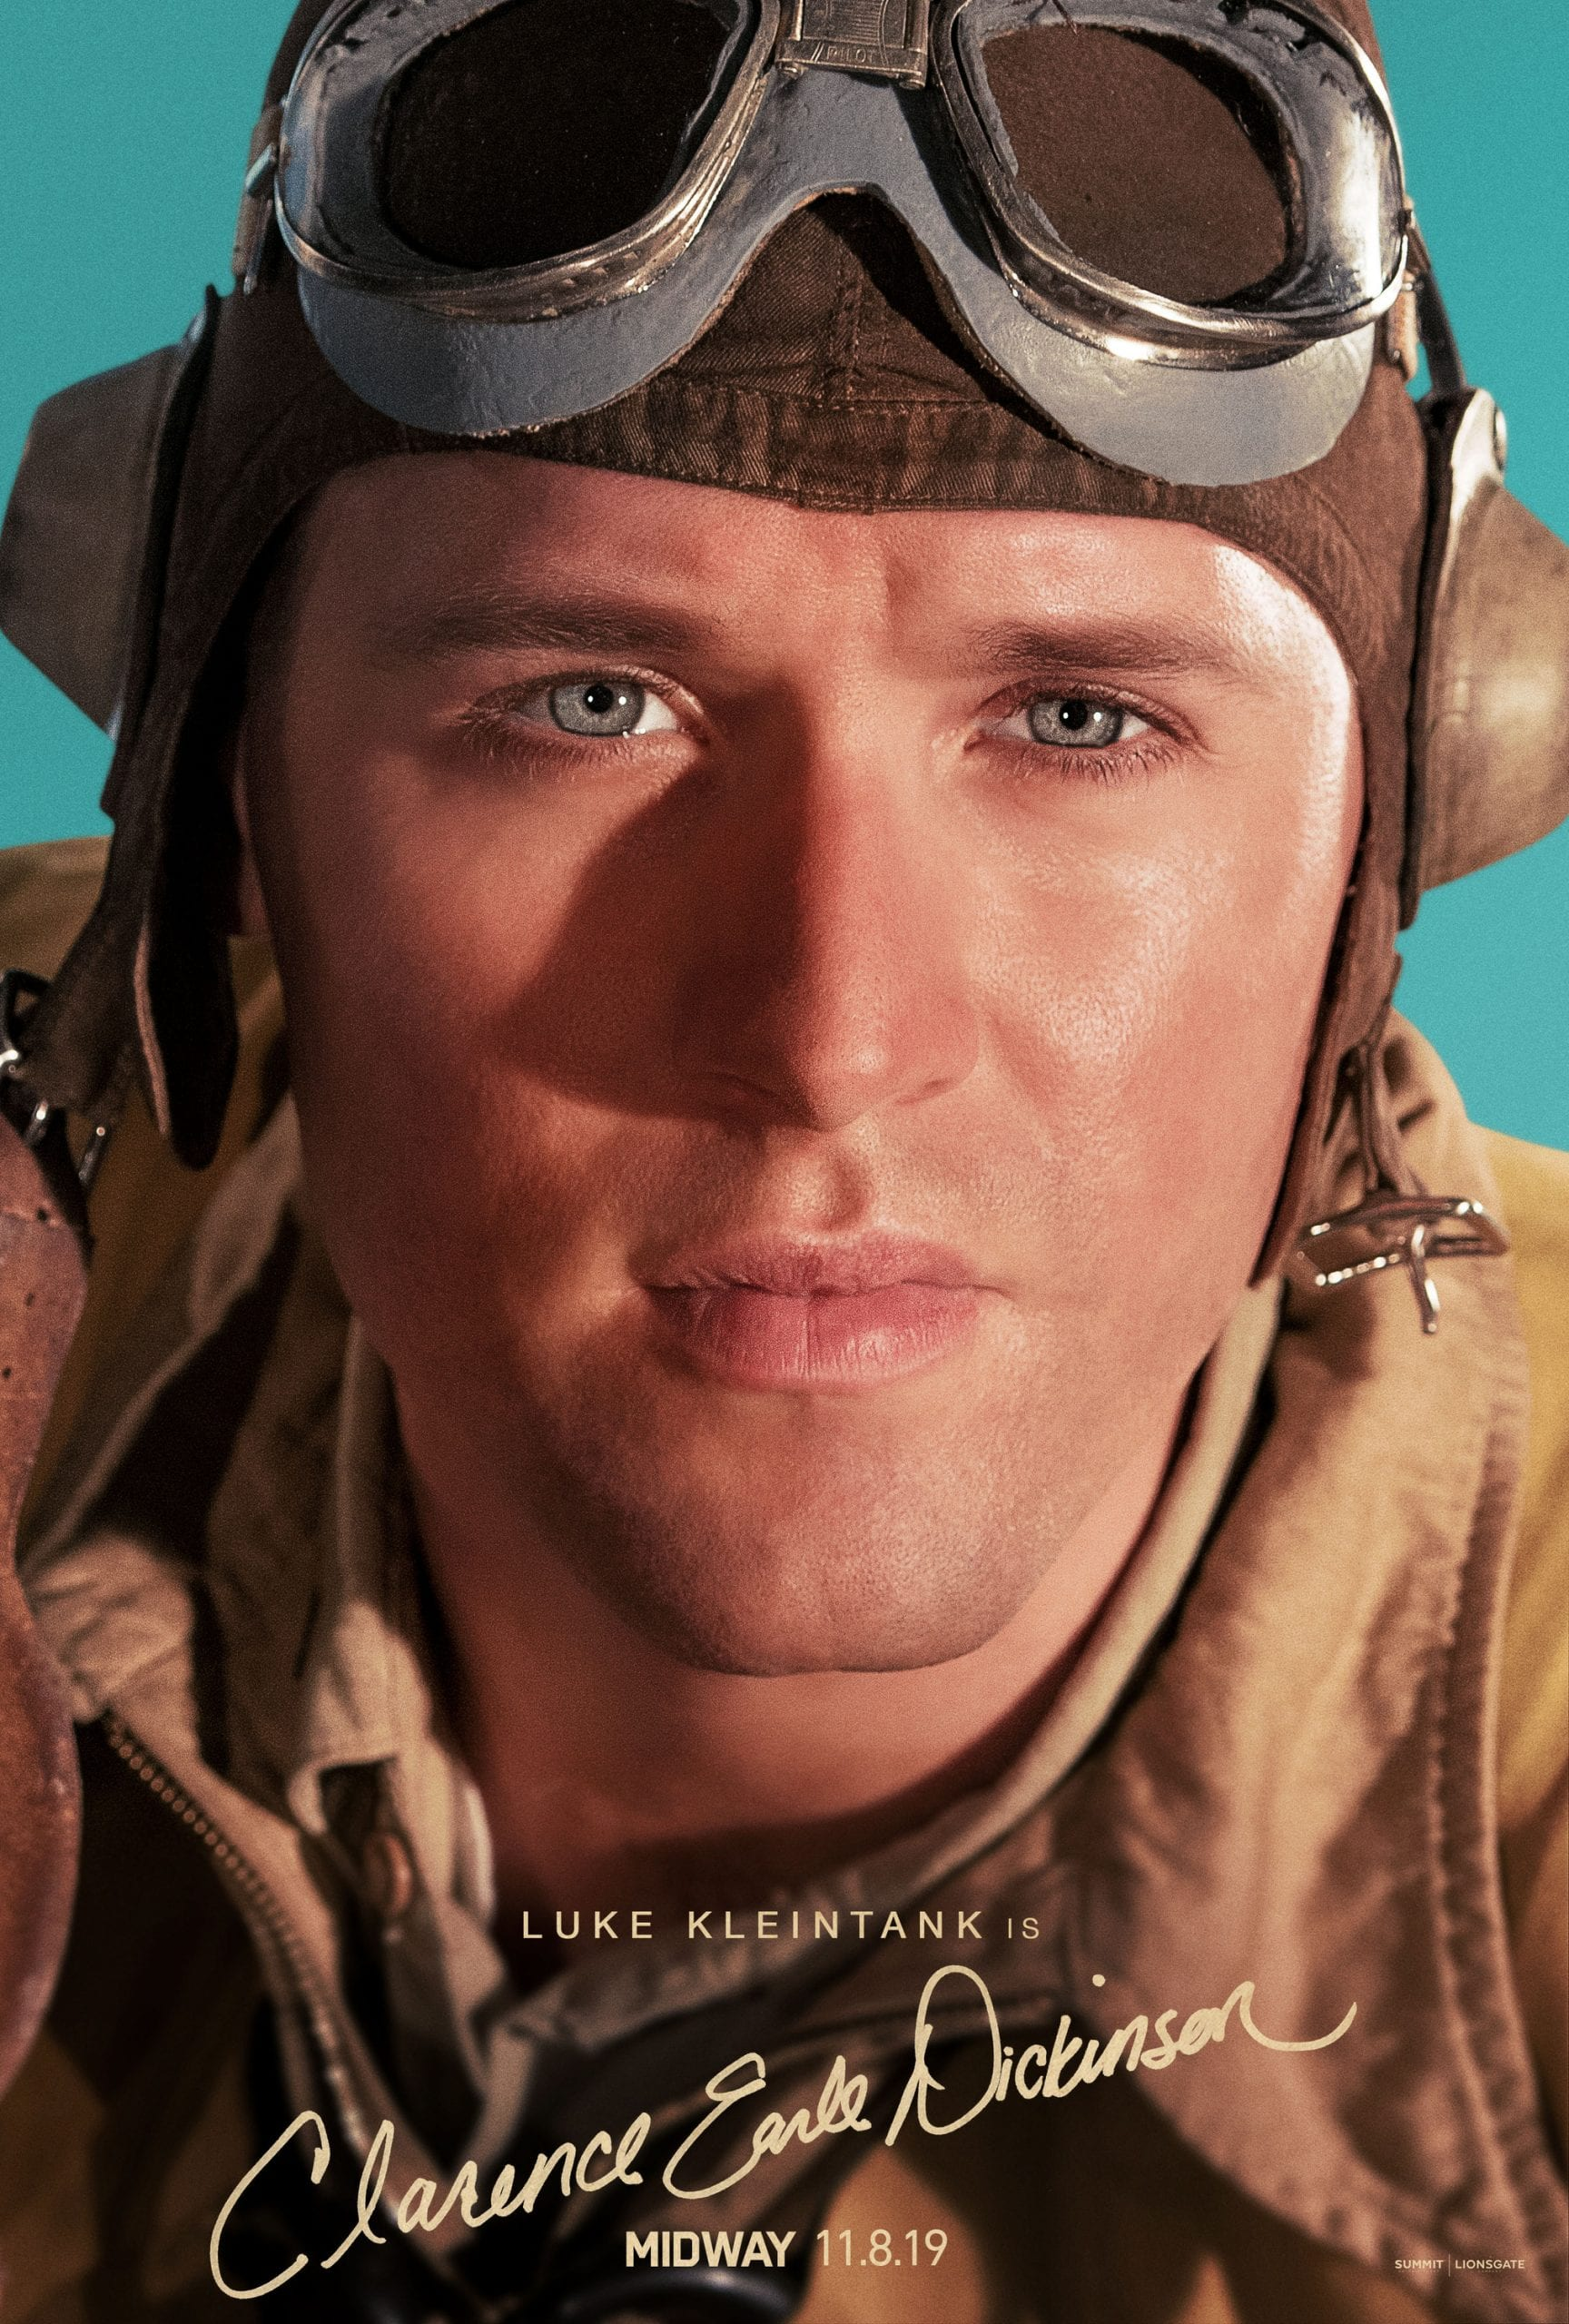 Midway Character Posters Luke Kleintank as Clarense Earl Dickinson